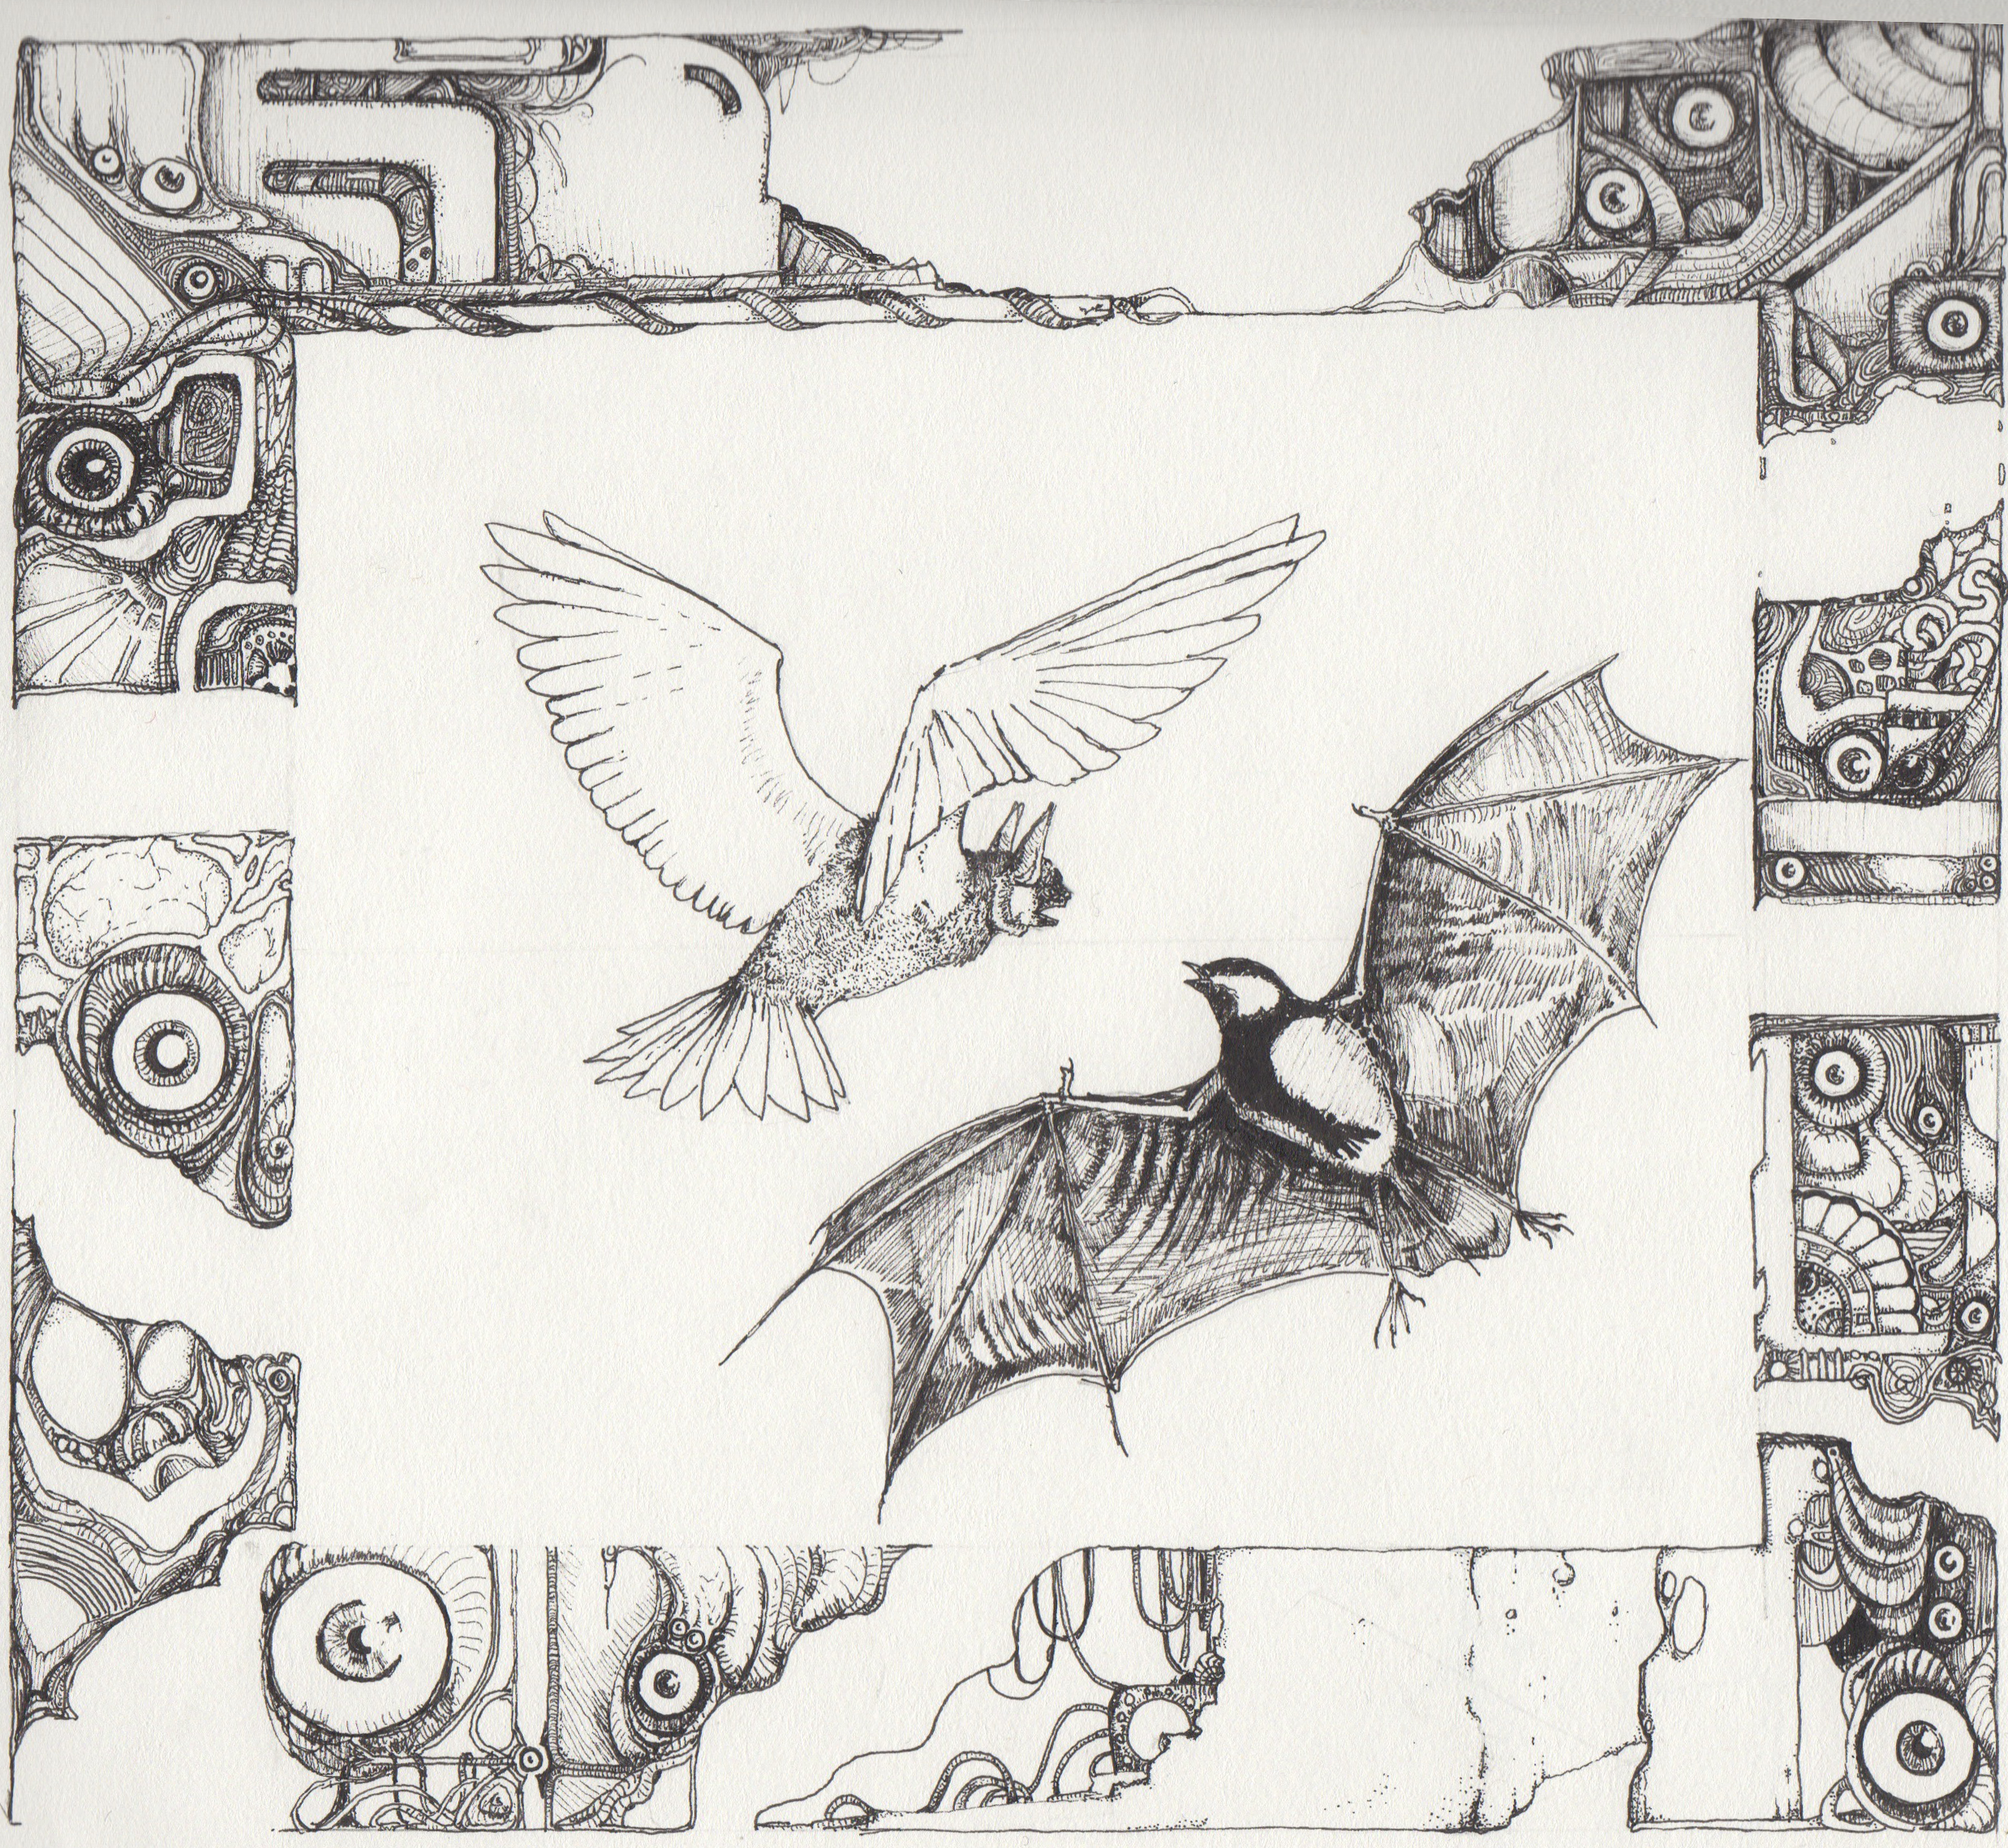 [Image: bird_and_bat_by_zemie-d8nha6l.png]